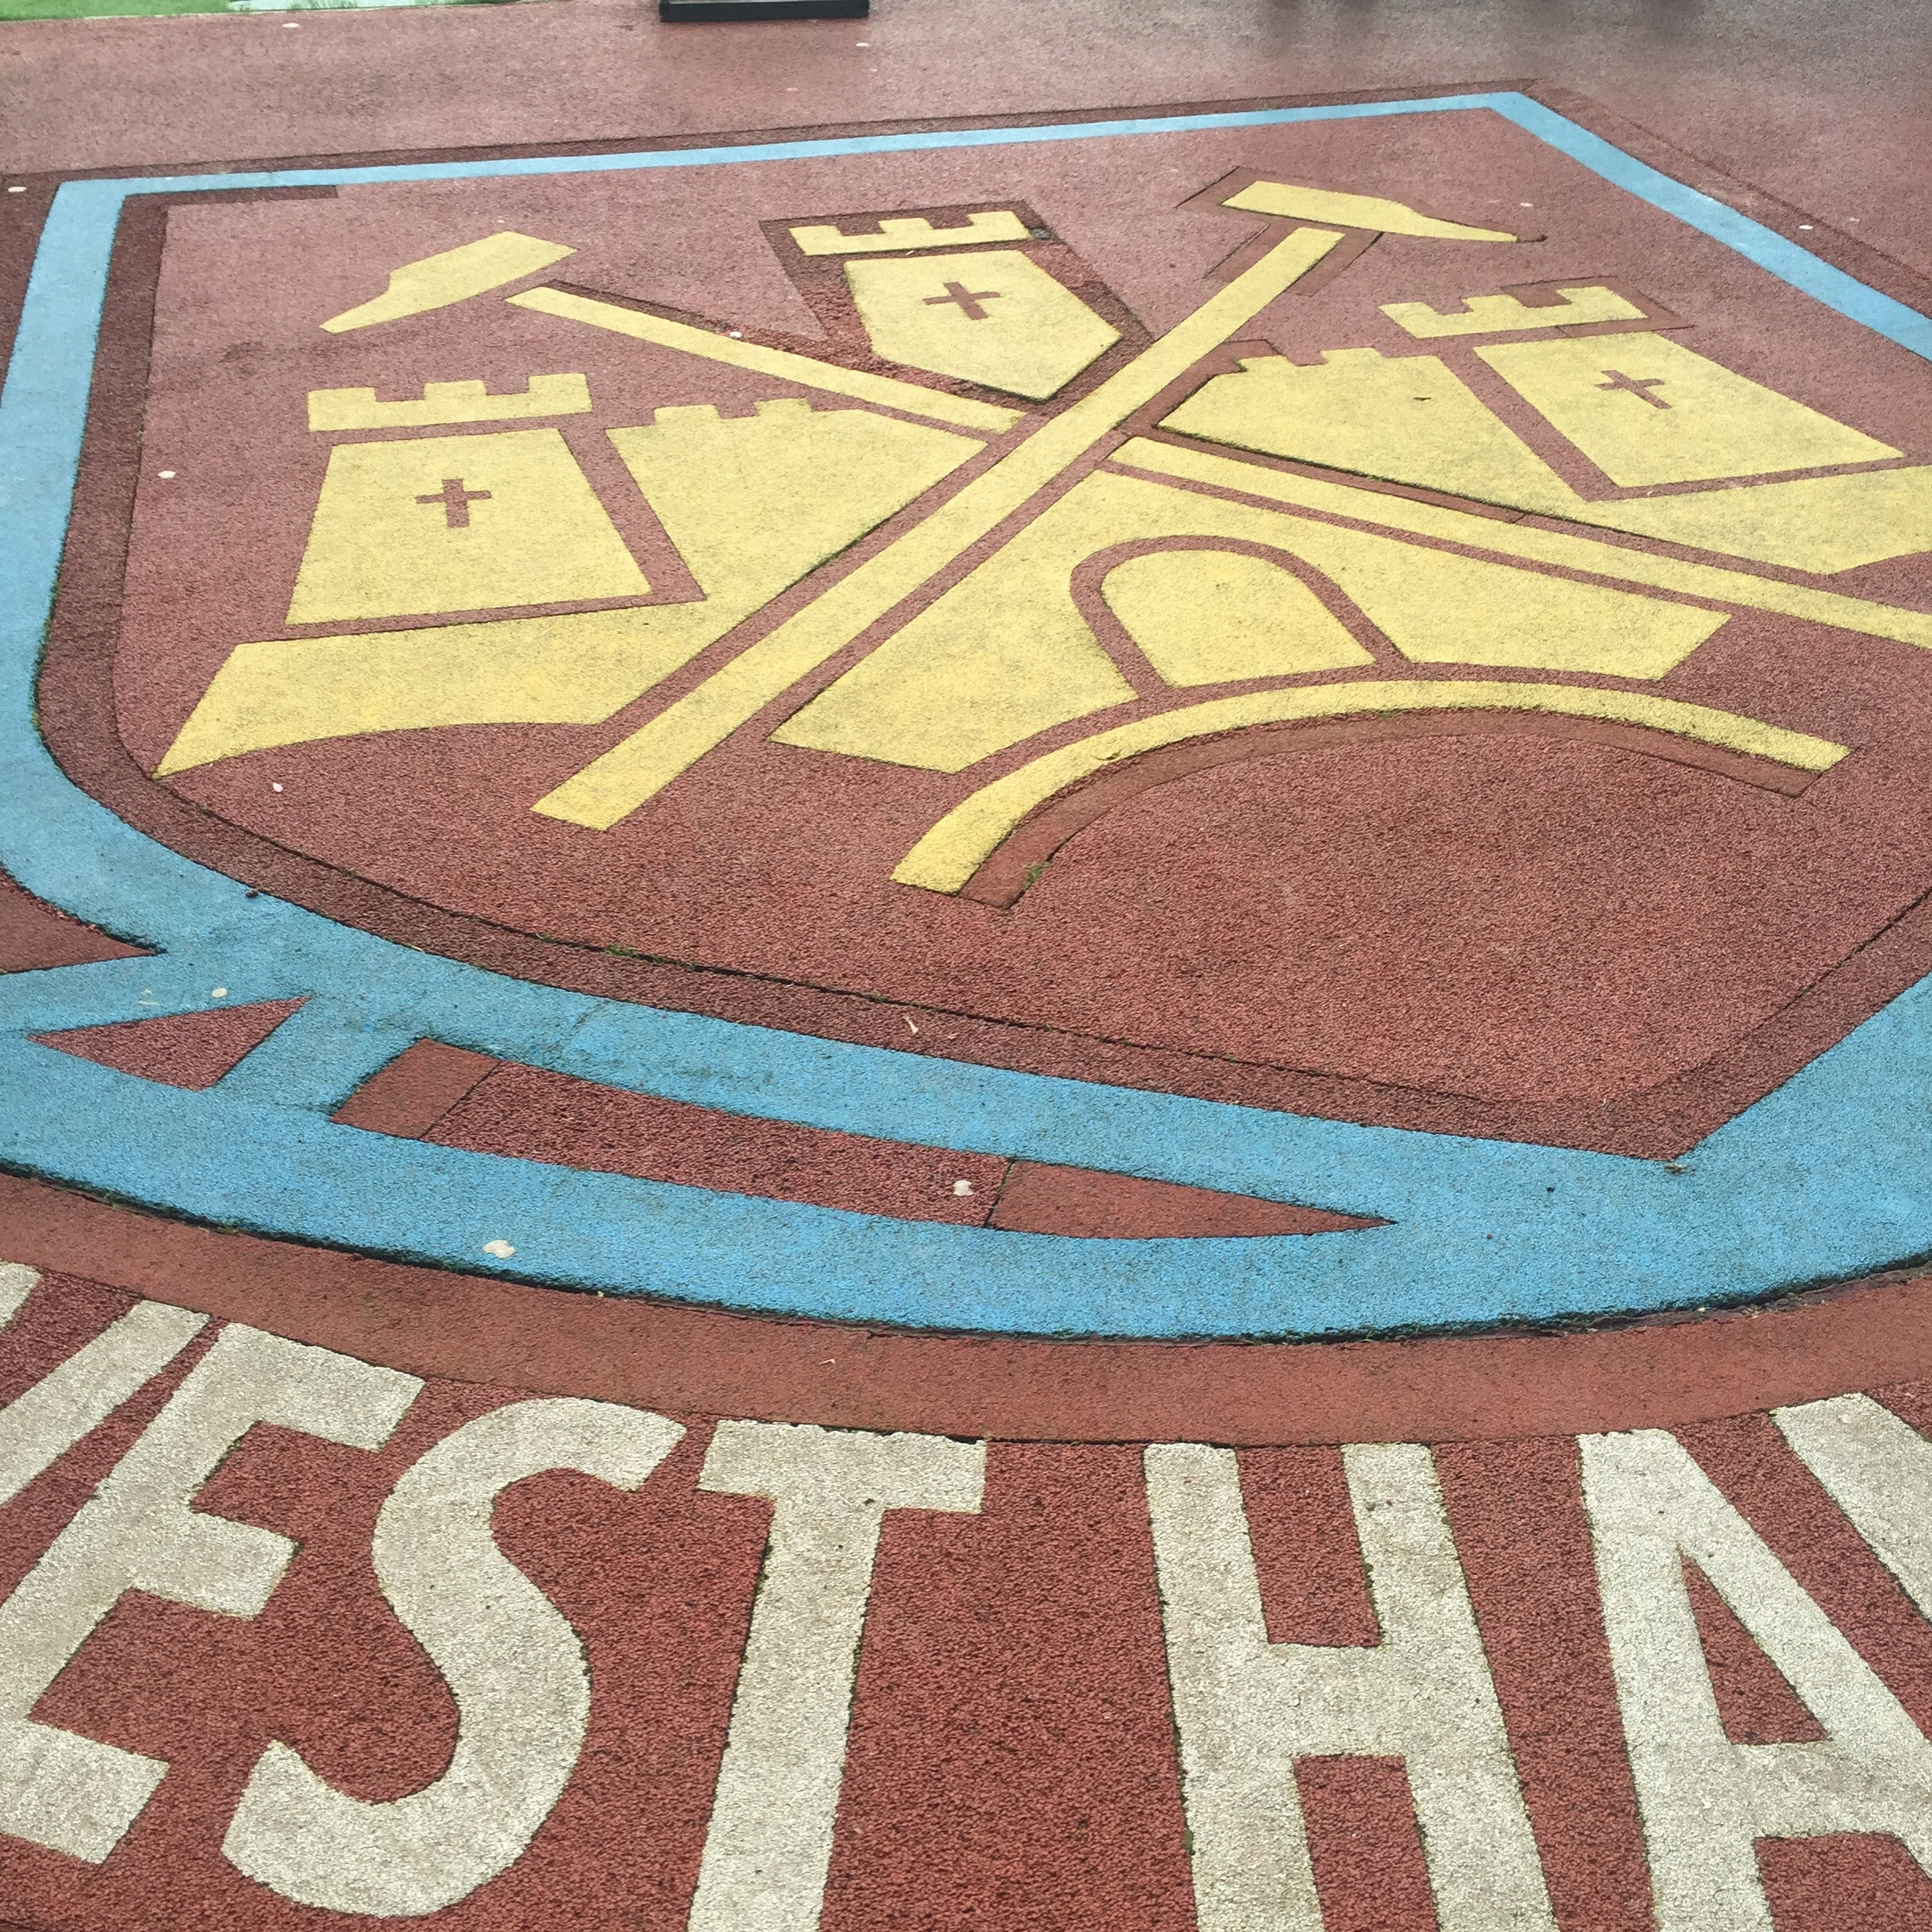 Come On You Irons!